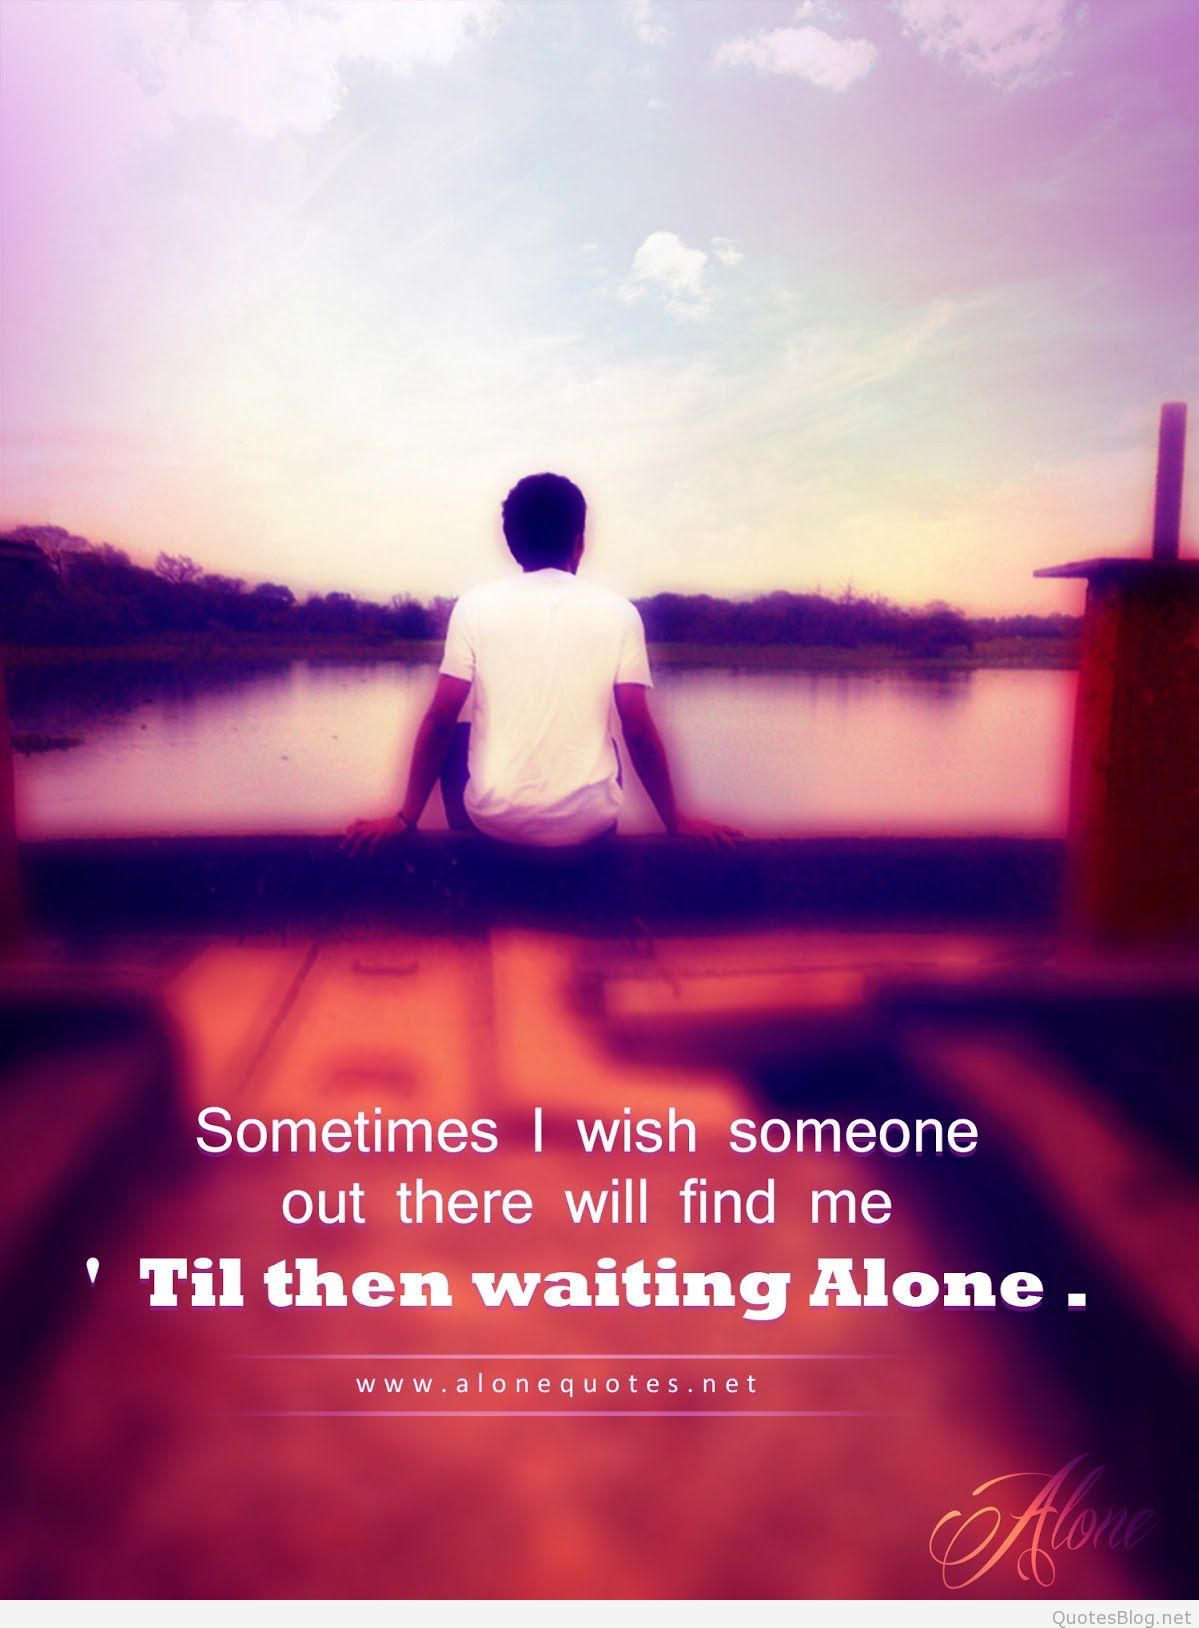 Sad Love Quotes For Boys Alone Boy Wallpaper Download Cool